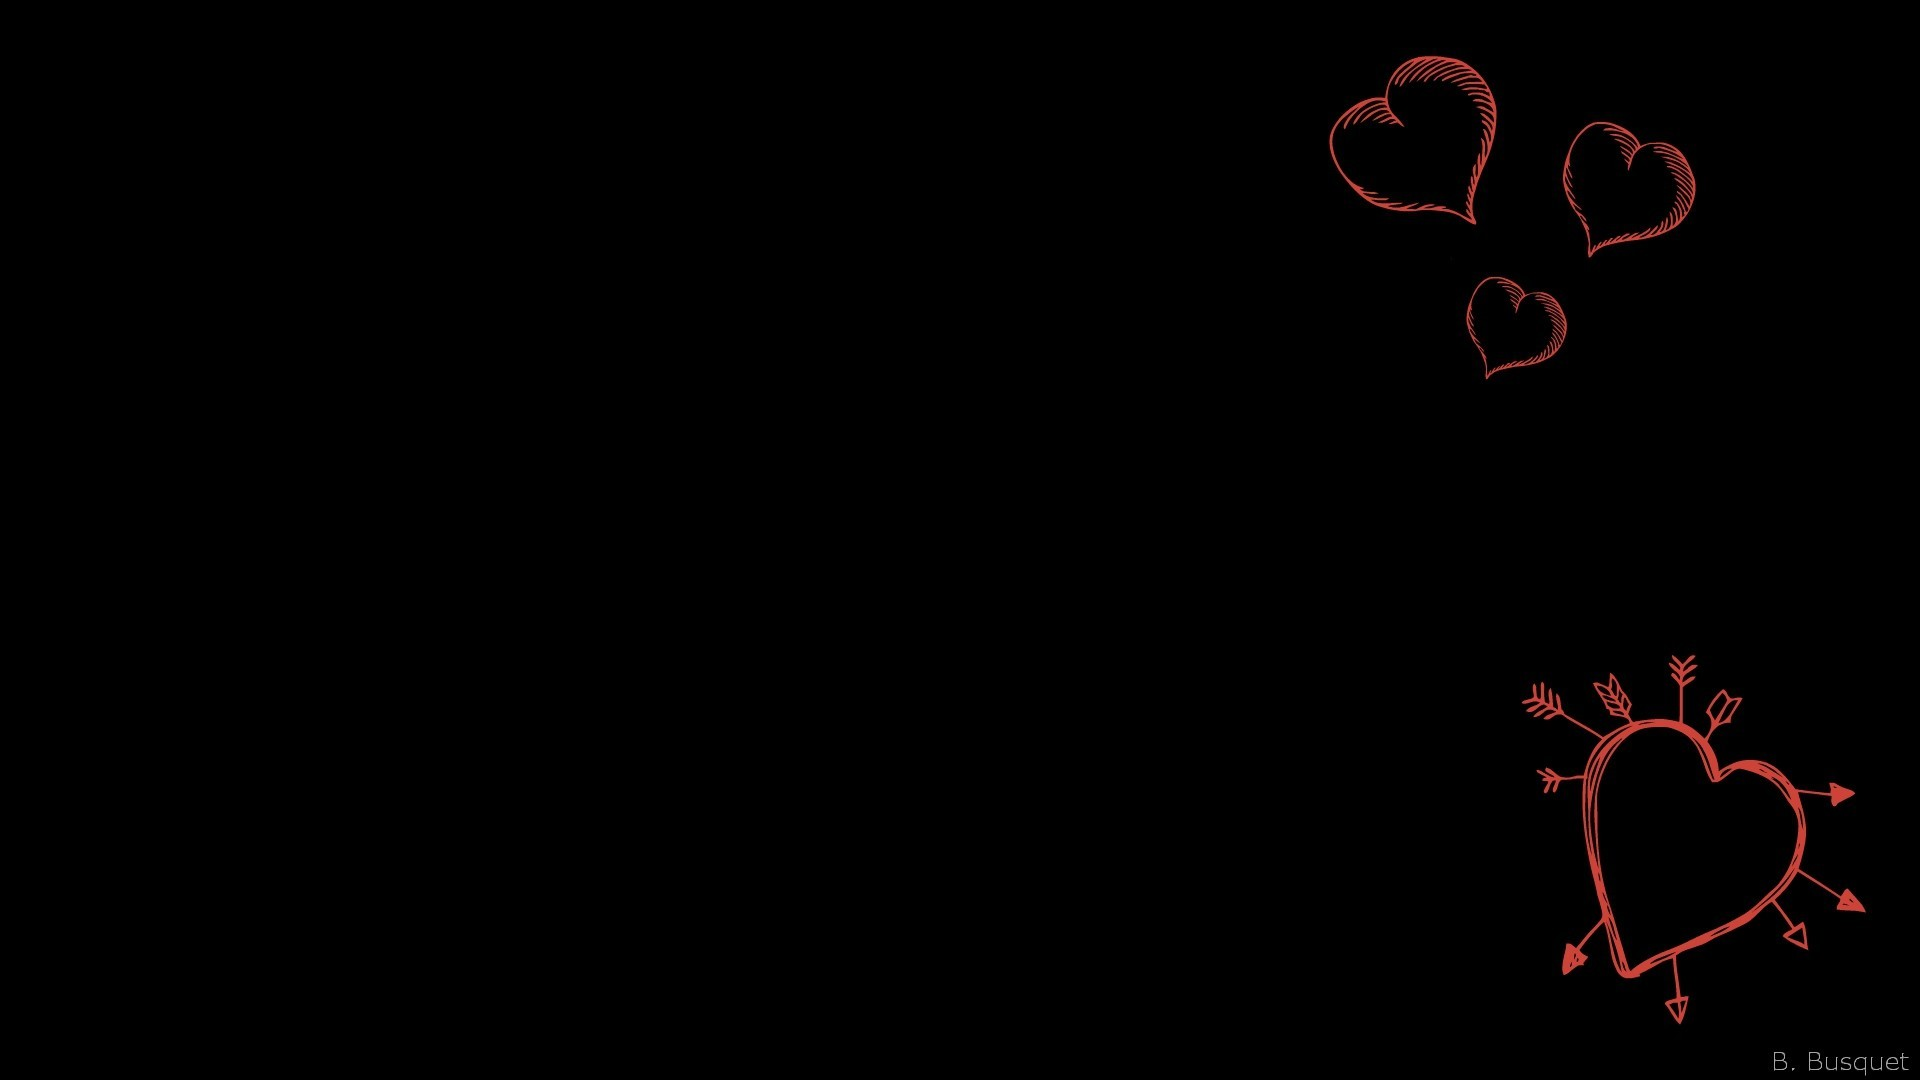 Res: 1920x1080, Black wallpaper with red hearts